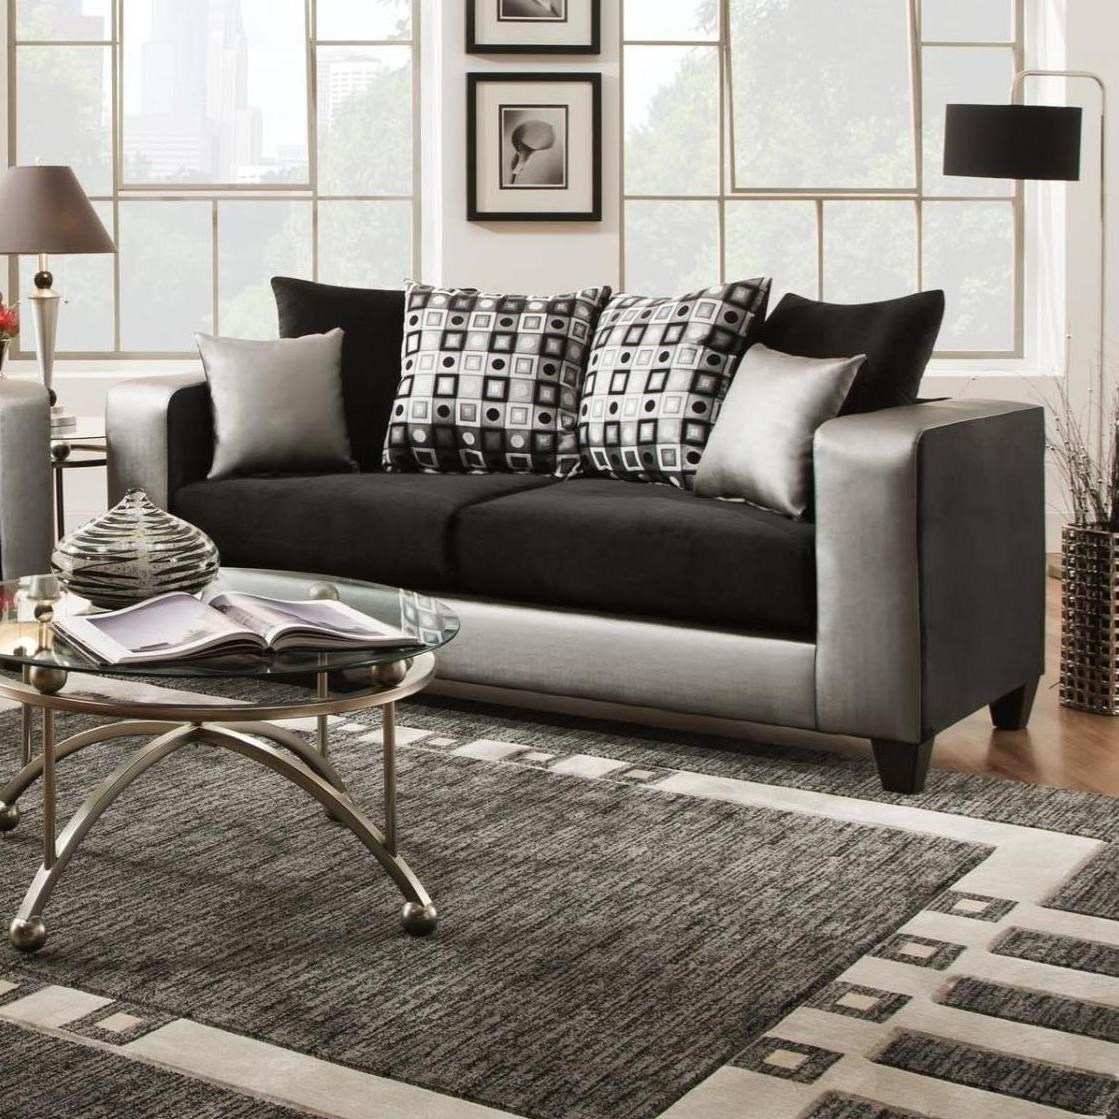 4120 Sofa by Delta Furniture Manufacturing at Dream Home Interiors